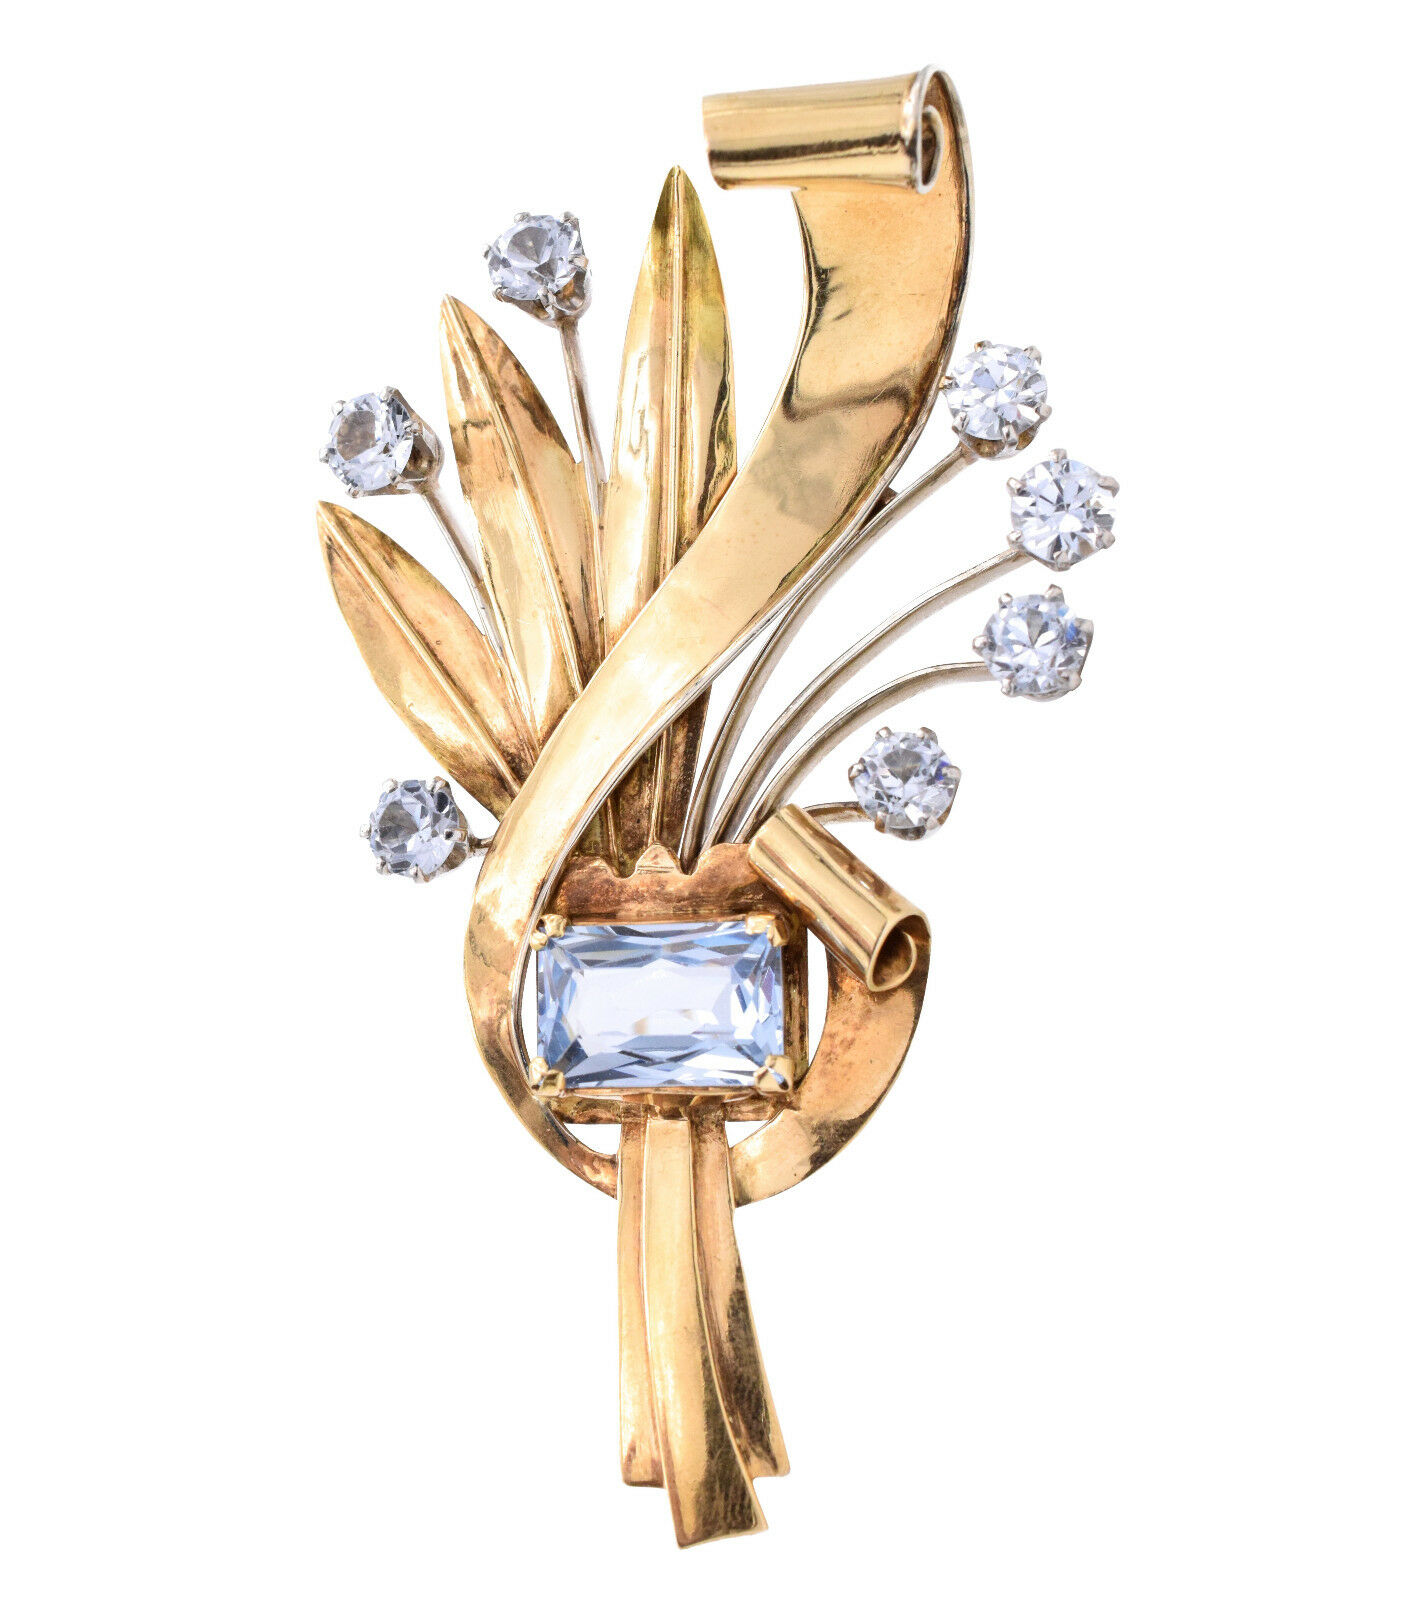 1930 - 1940 Art Deco Brooch Pin In 14k Yellow gold, Multi color Stones, 34.6g